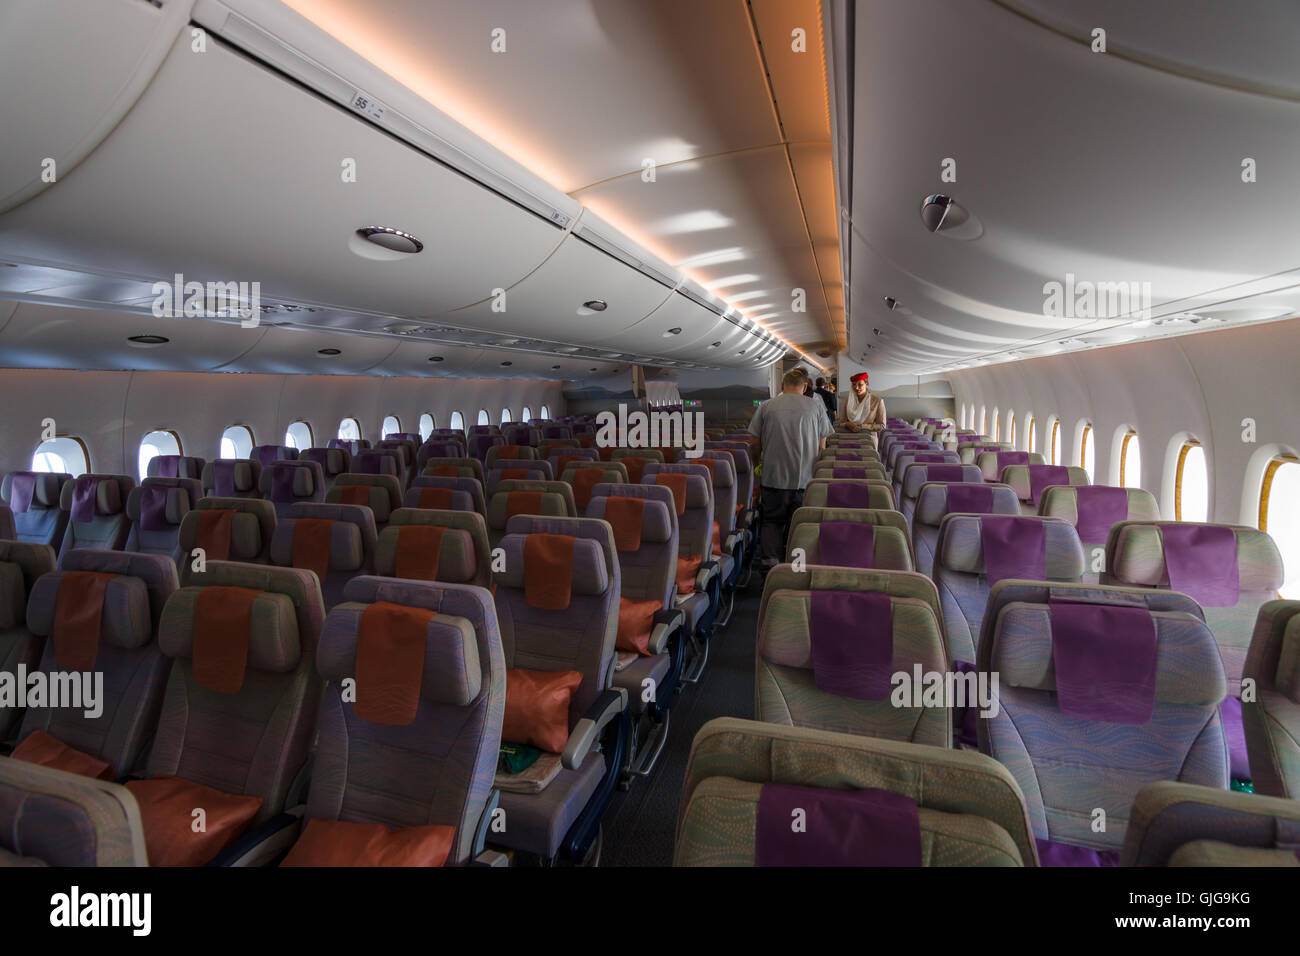 A380 Interior Stock Photos & A380 Interior Stock Images - Page 2 - Alamy